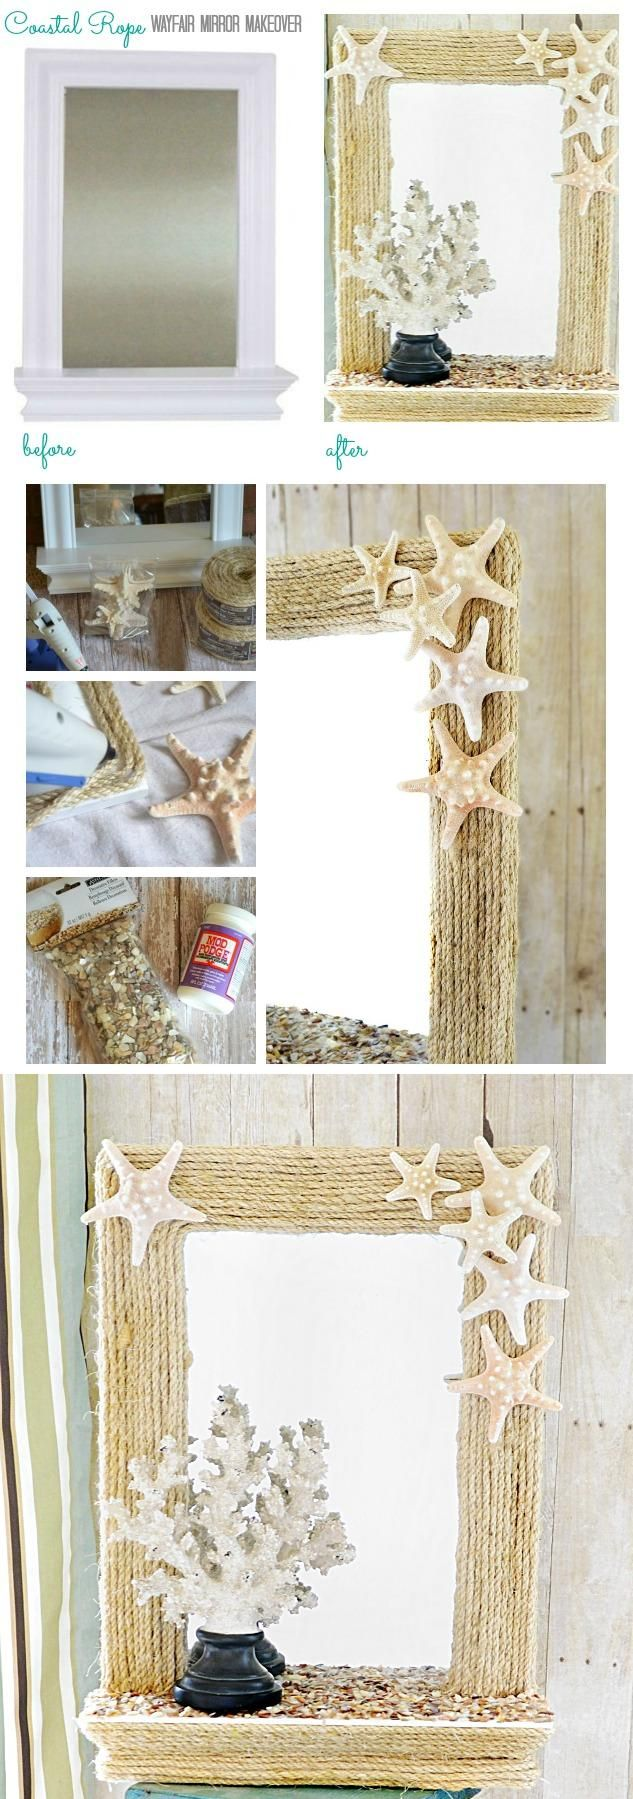 Be Creative: DIY Home Decor Ideas DIY Coastal Rope Mirror Makeover